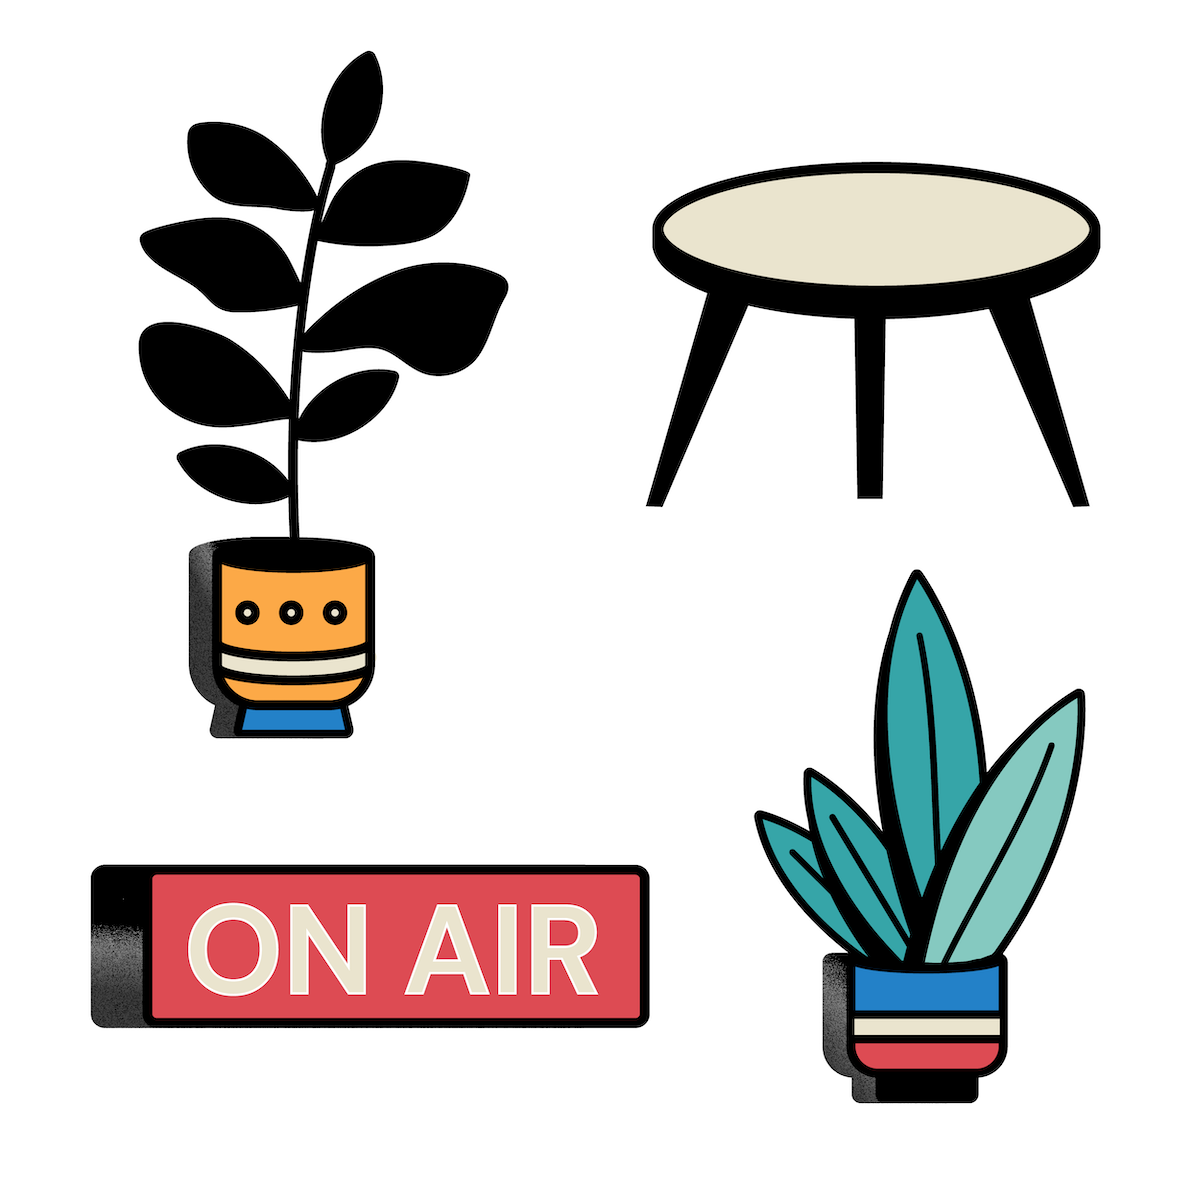 Illustrations of plants and a stand